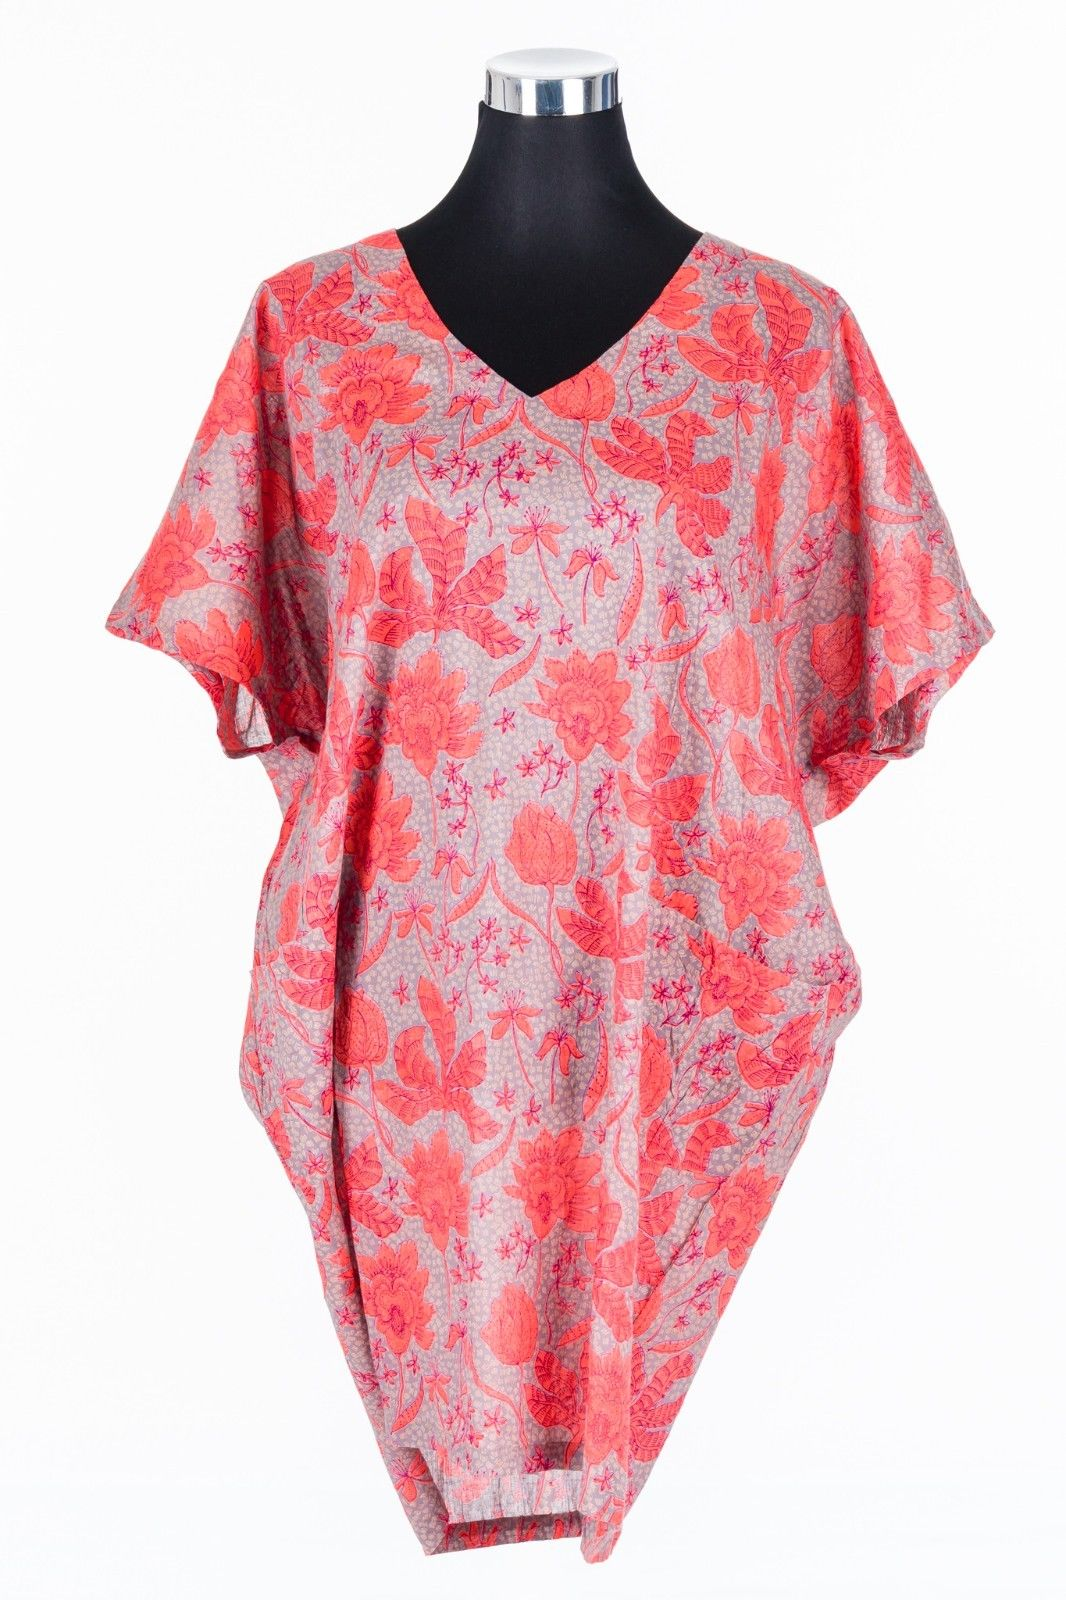 CASUAL-DRESS-PLUS-SIZE-BATWING-SLEEVE-FLORAL-VERMILION-RED-ORANGE-TAN-PRINT-382057531081